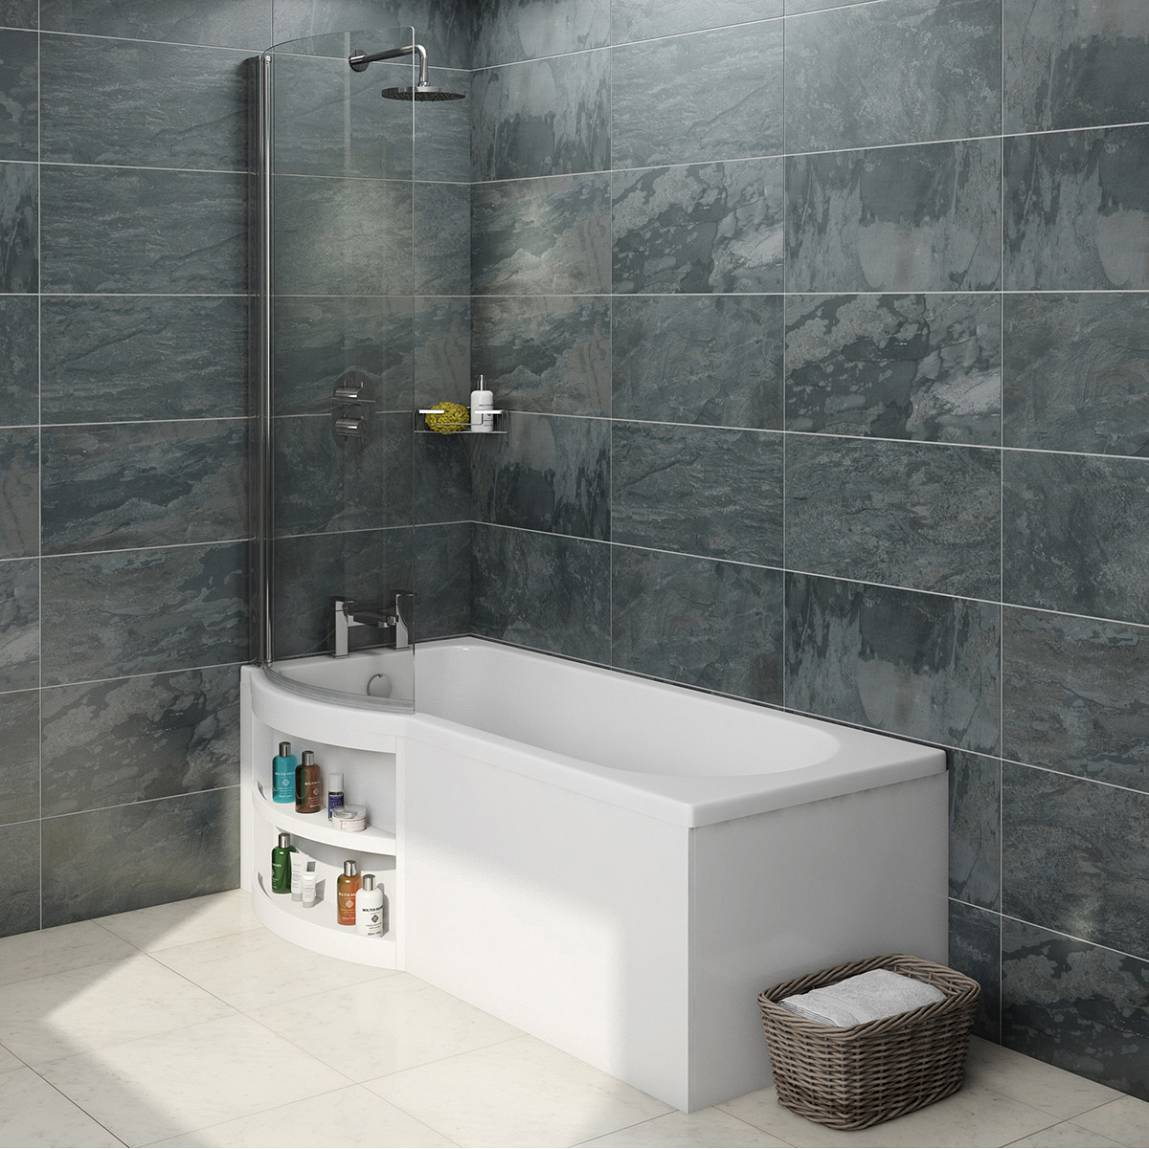 5 Smart Small Bathroom Ideas